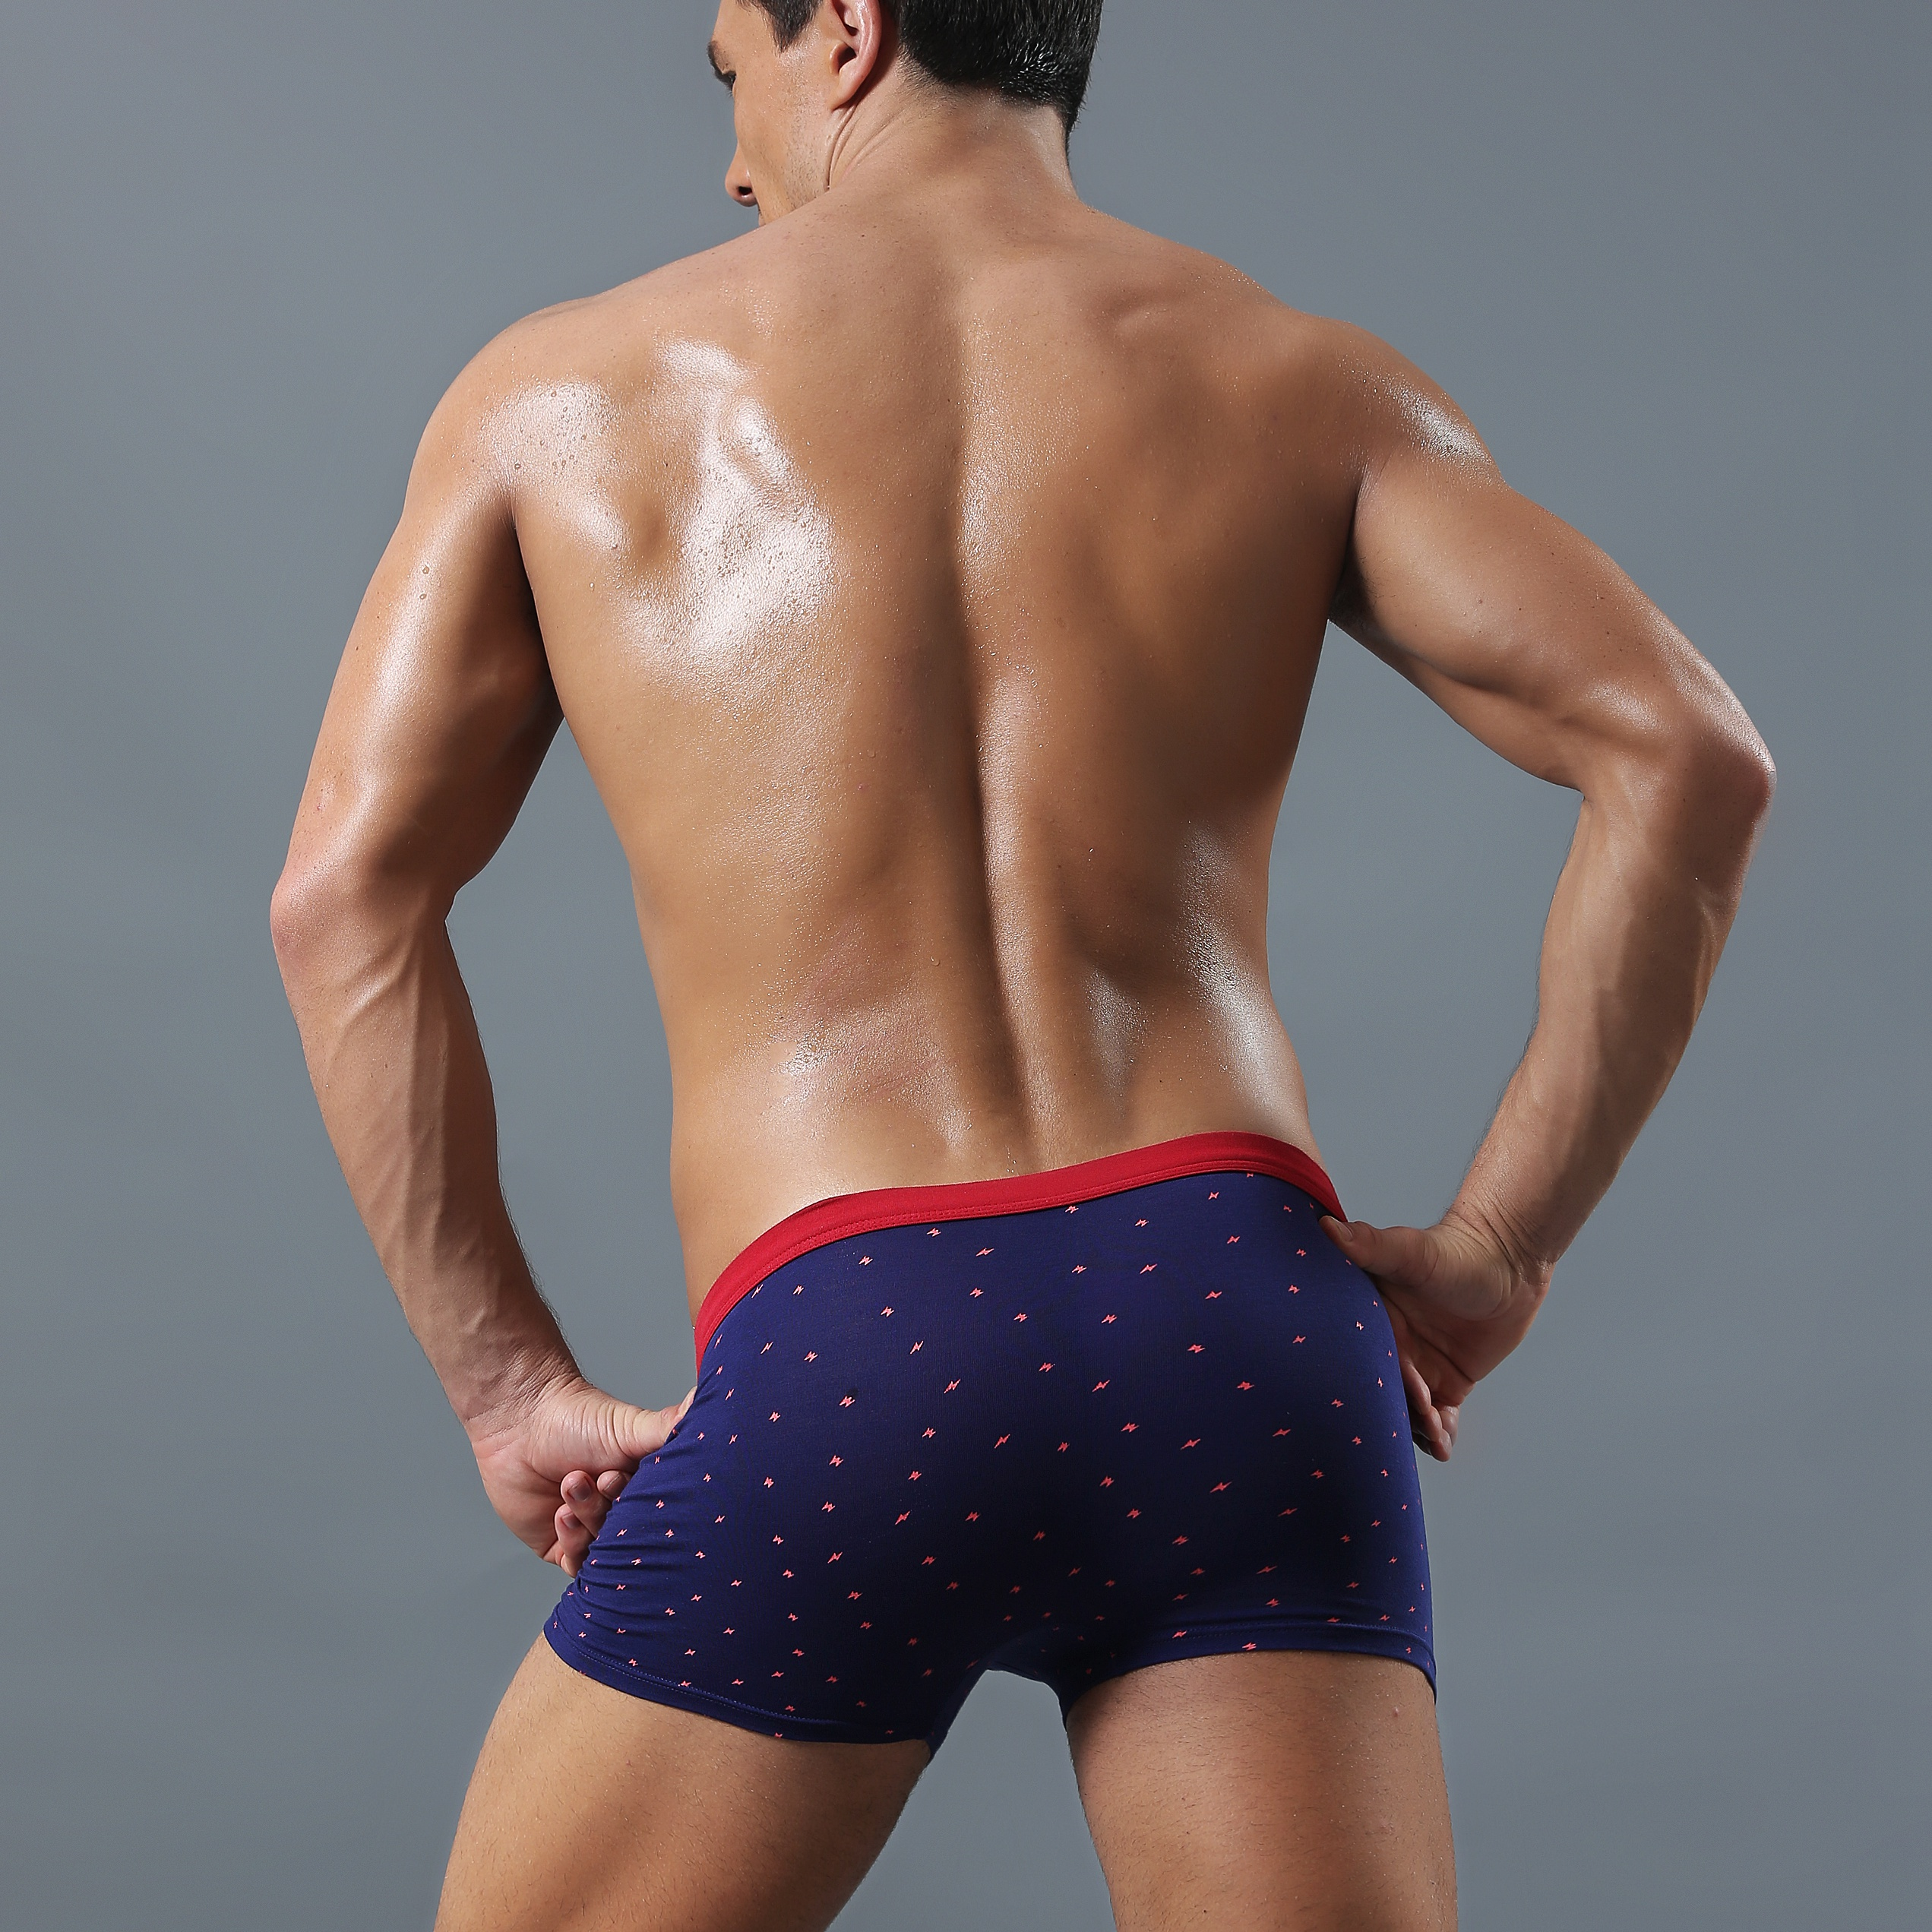 high click for p performance boxer save men comforter black to briefs in yellow expand boxers comfortable reebok